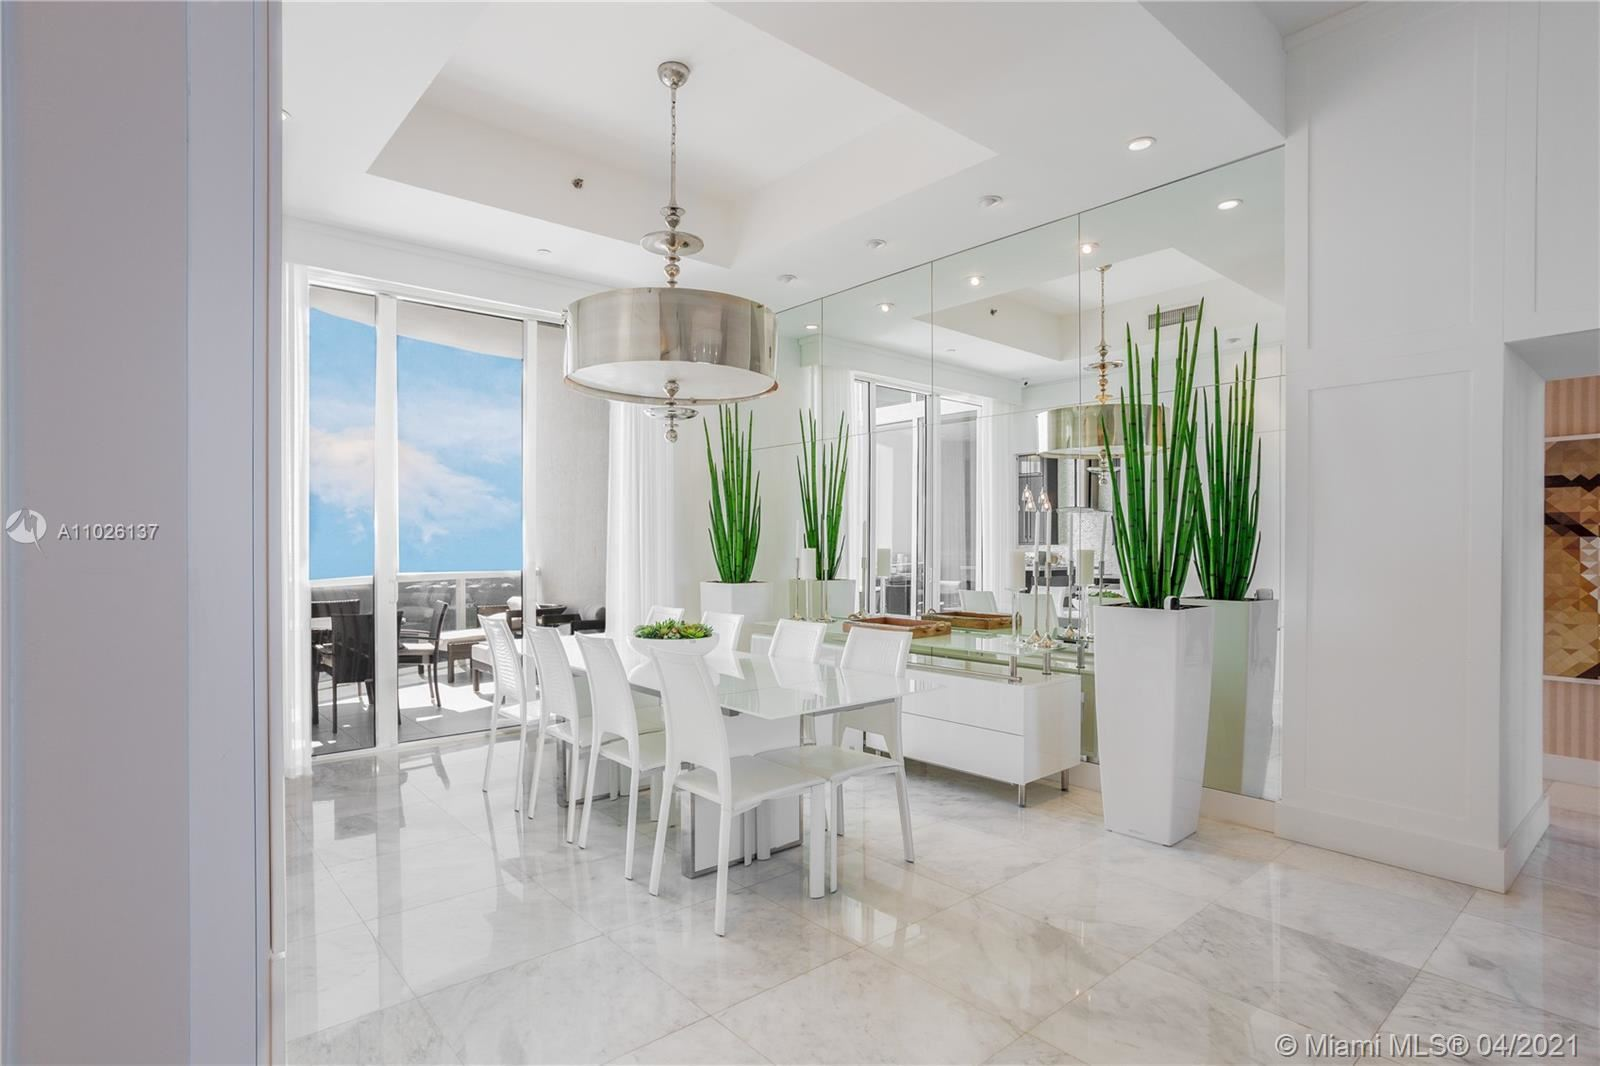 15901 Collins Ave #4204, Sunny Isles, FL 33160 - #: A11026137